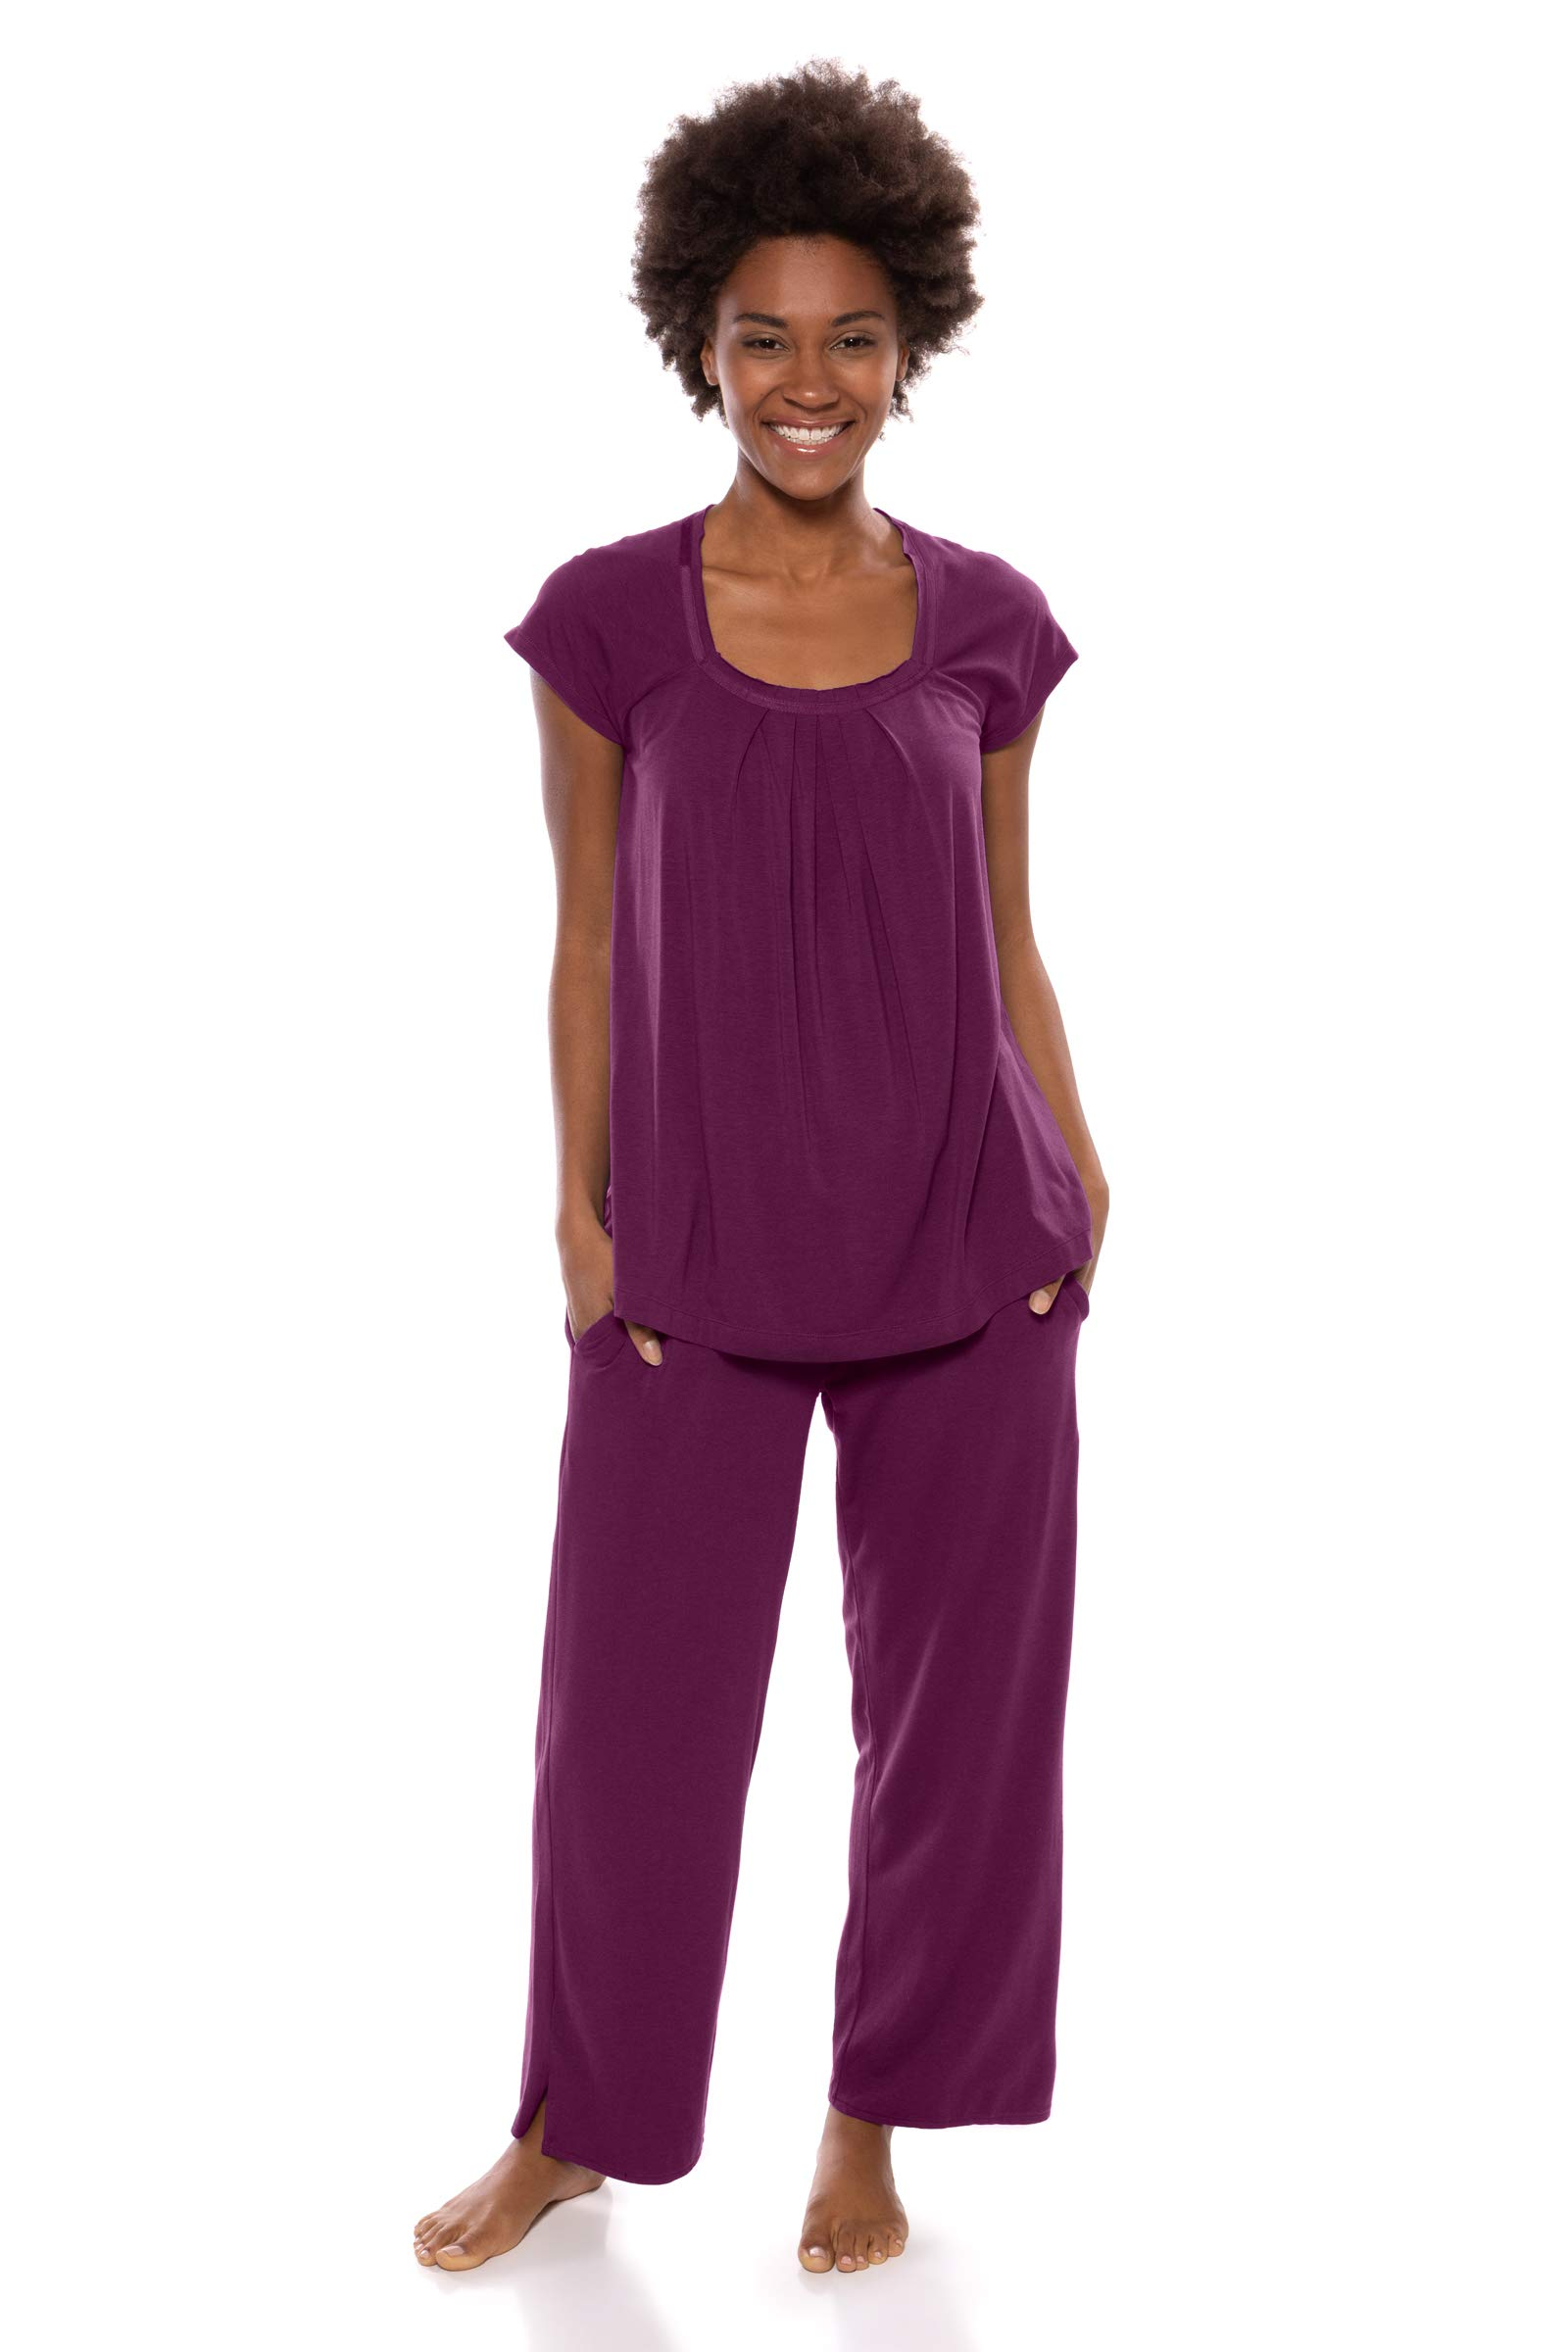 a53306e167 Women s Pajamas in Bamboo Viscose (Bamboo Bliss) Cozy Sleepwear Set by  Texere